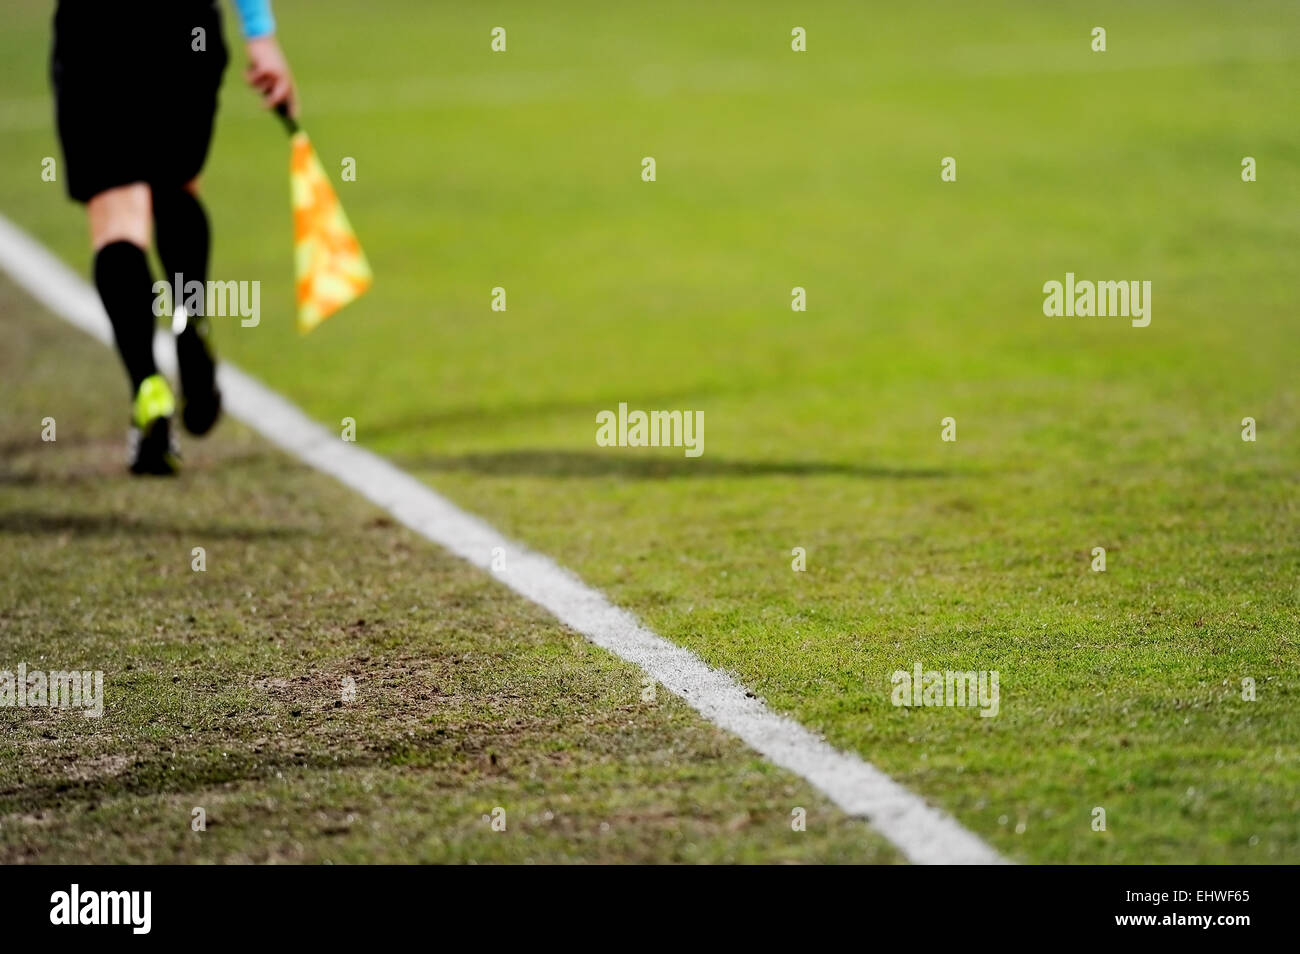 Assistant referees running along the sideline during a soccer match - Stock Image